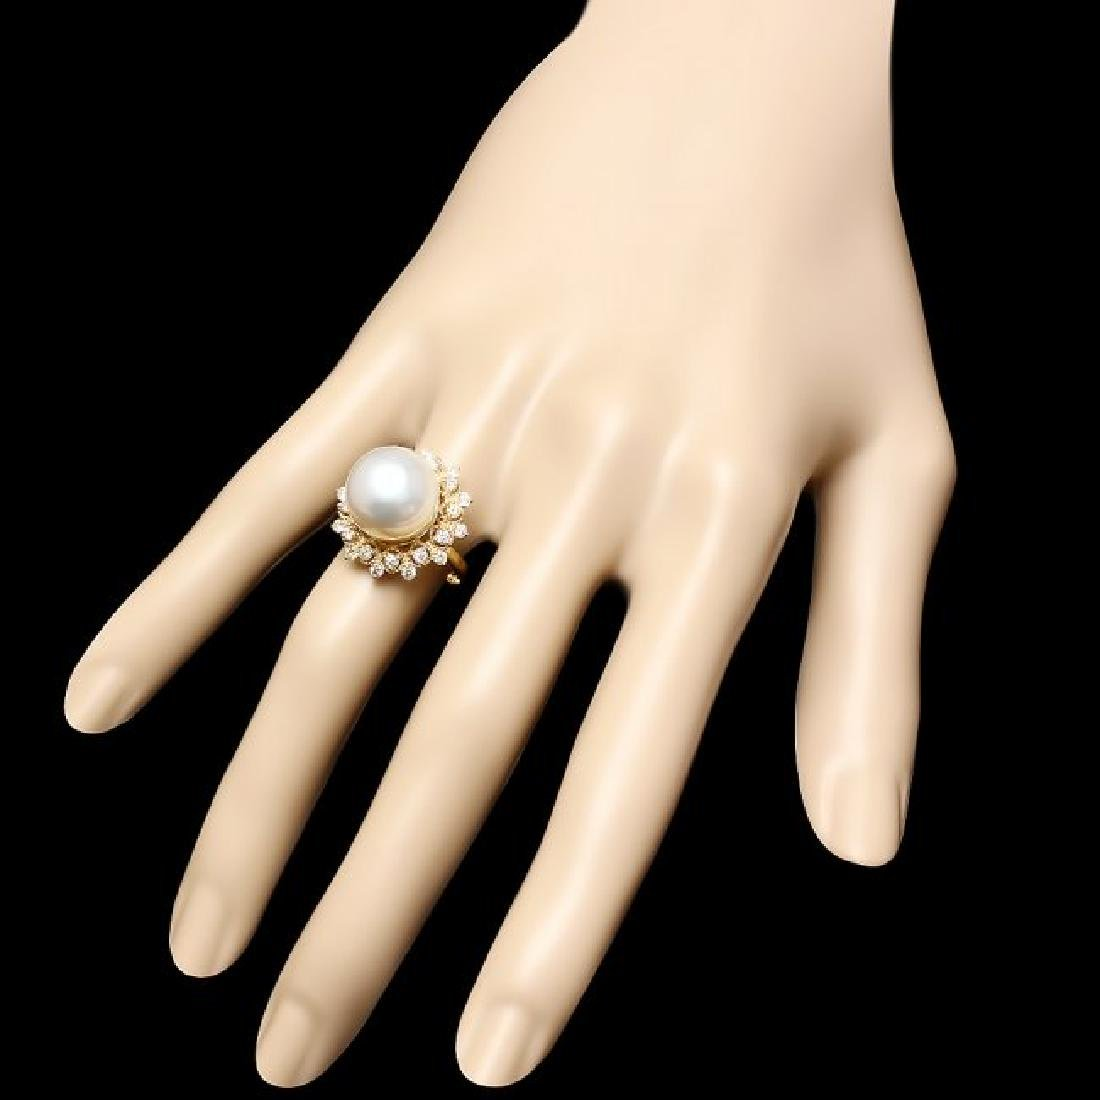 14k Gold 12 X 12mm Pearl 0.70ct Diamond Ring - 3